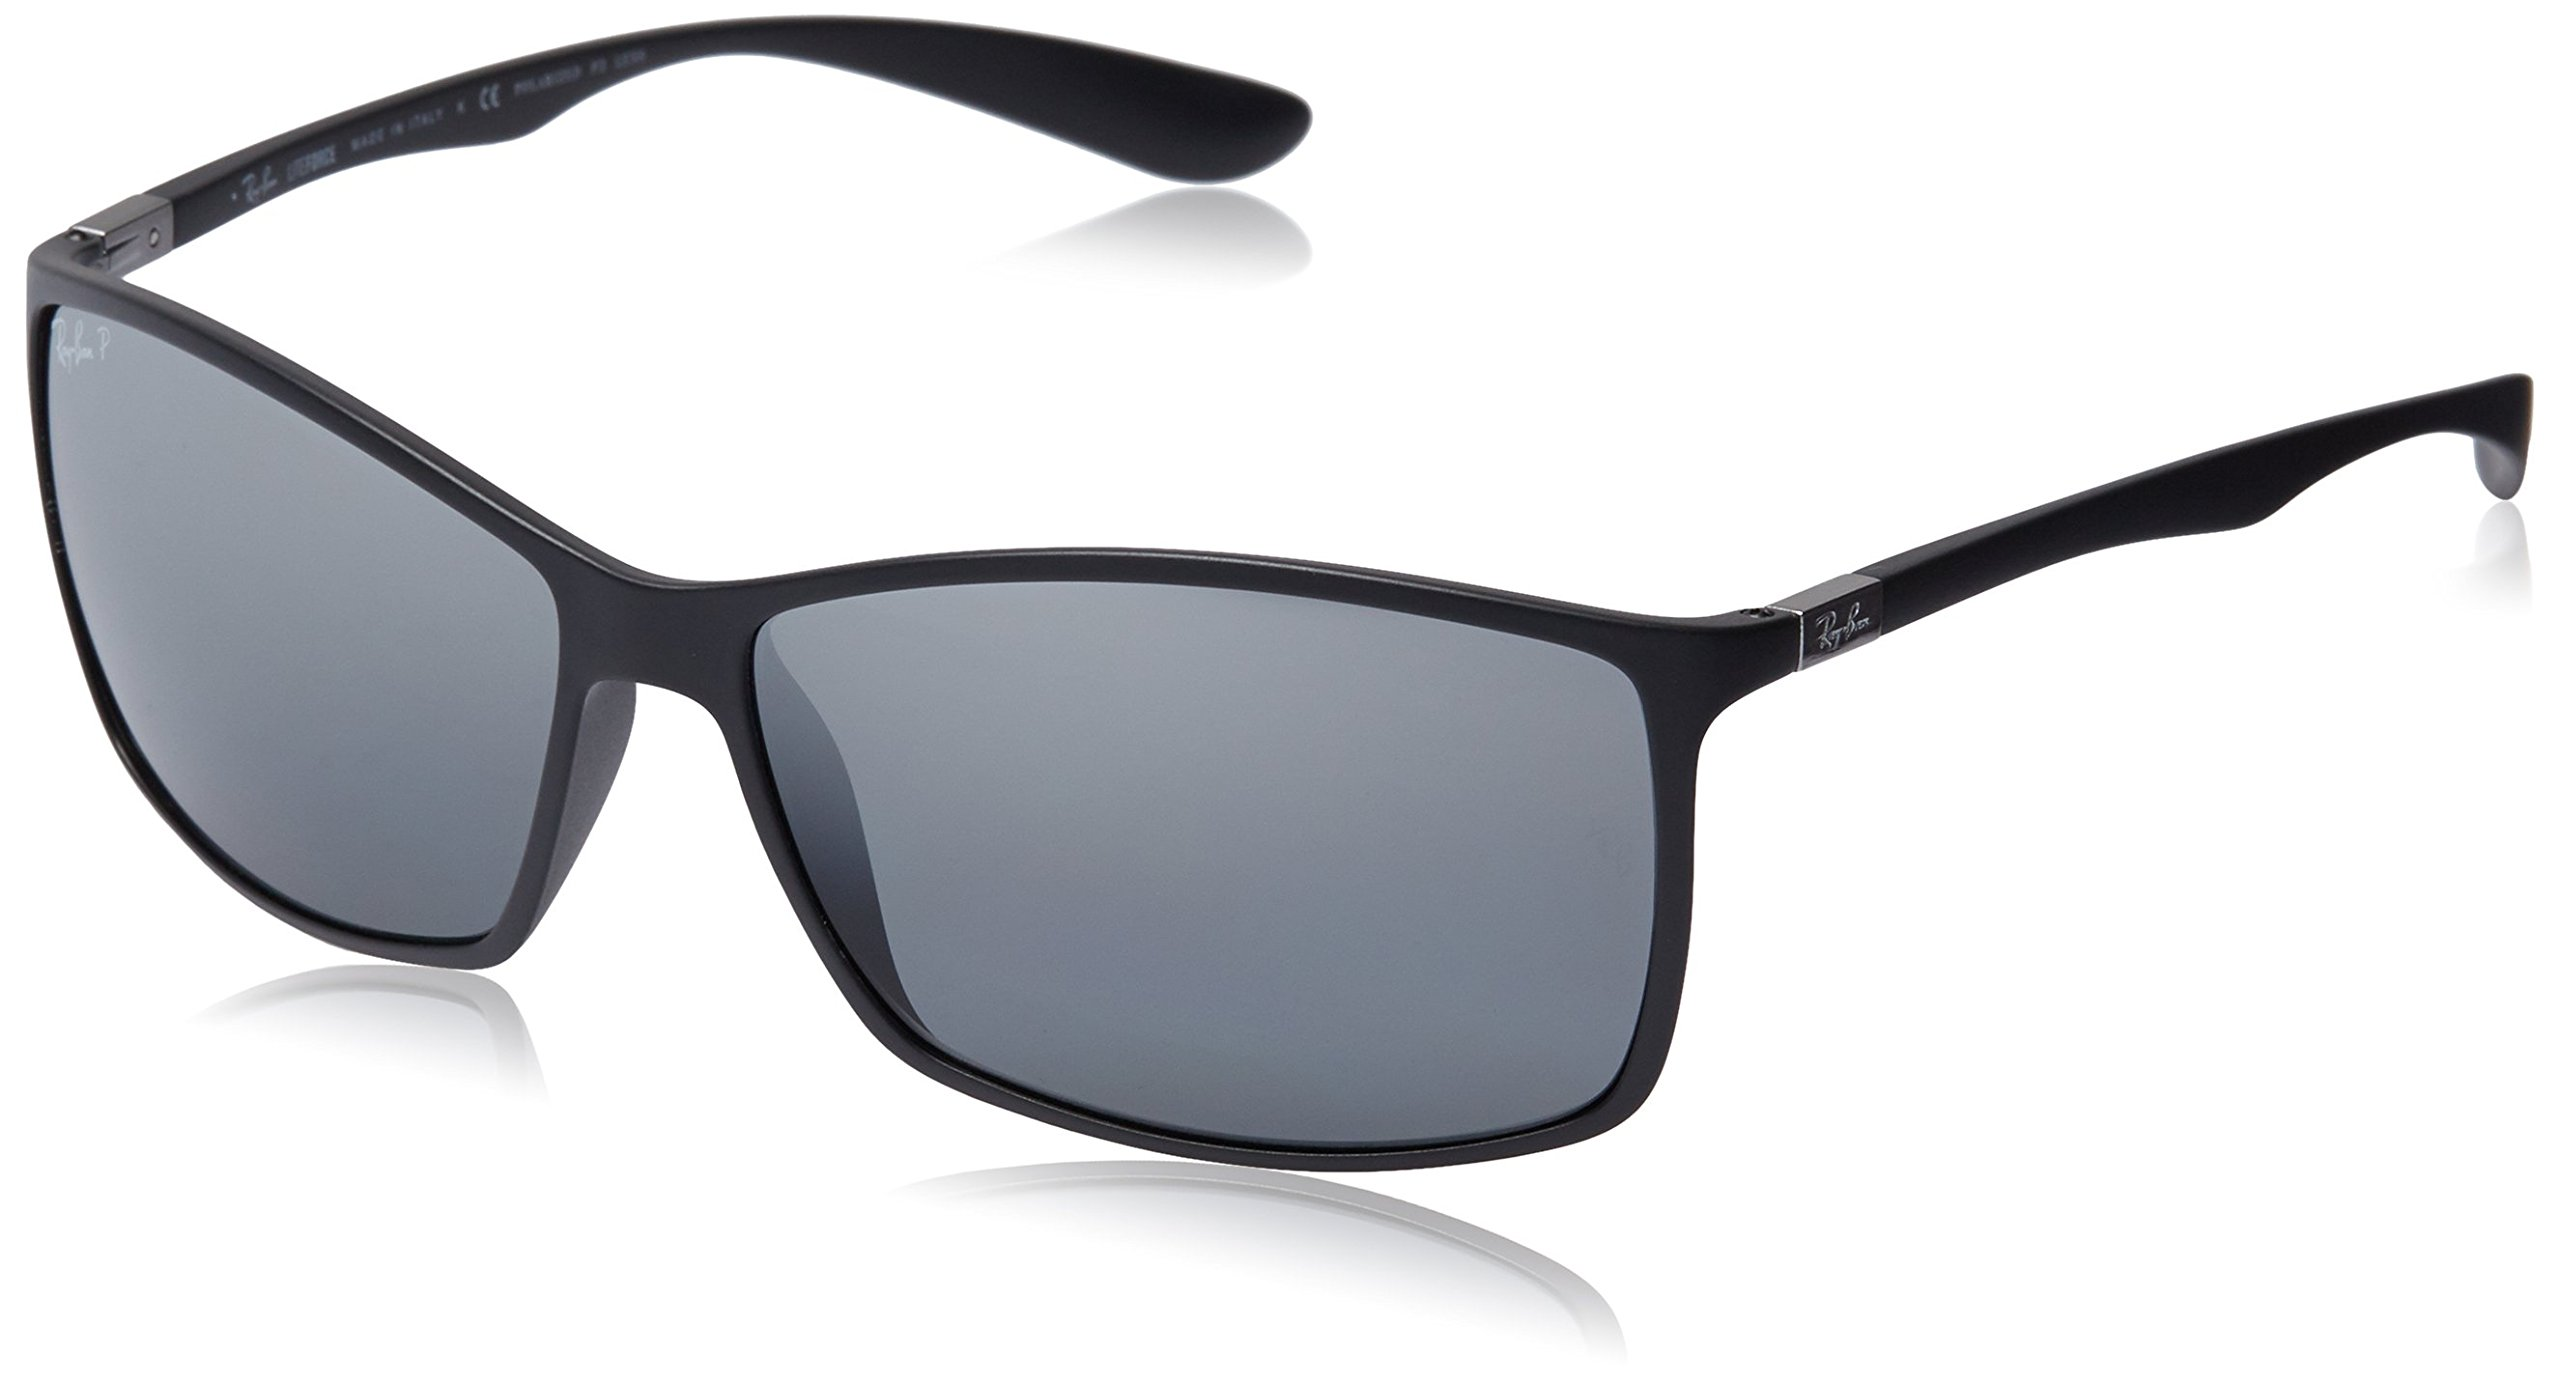 Ray-Ban RB4179 601S82 Polarized Rectangular Sunglasses, Matte Black/Polar Grey Mirror Silver Gradient, 62 mm by Ray-Ban (Image #1)